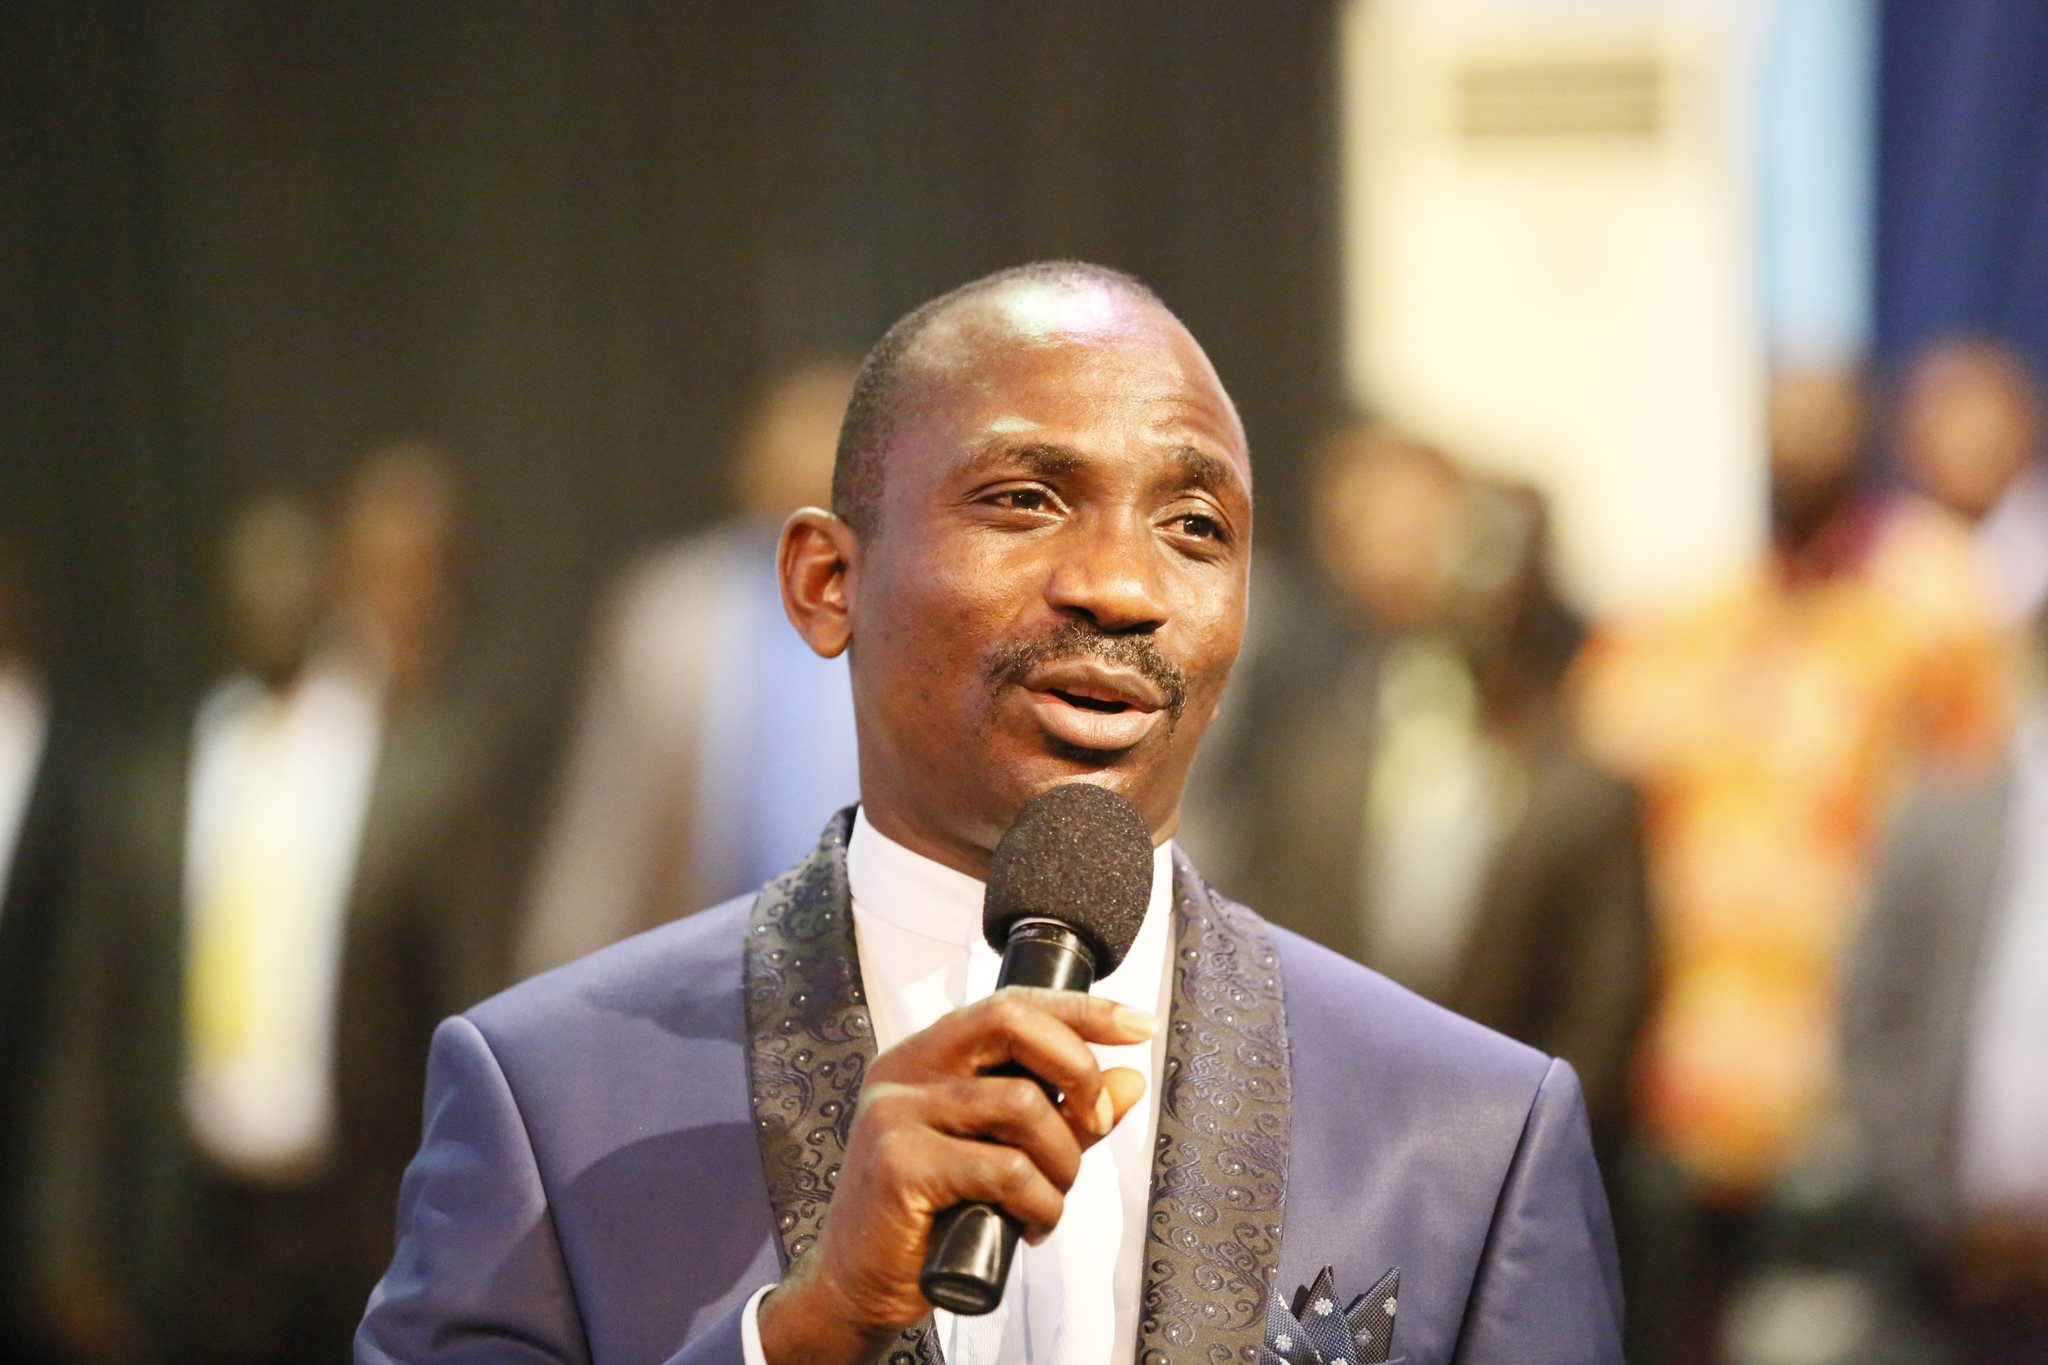 OMG! Pastor Enenche Owner Of The World's Largest Church Auditorium Tells Millions Of Christians What To Do During Saturday's Elections